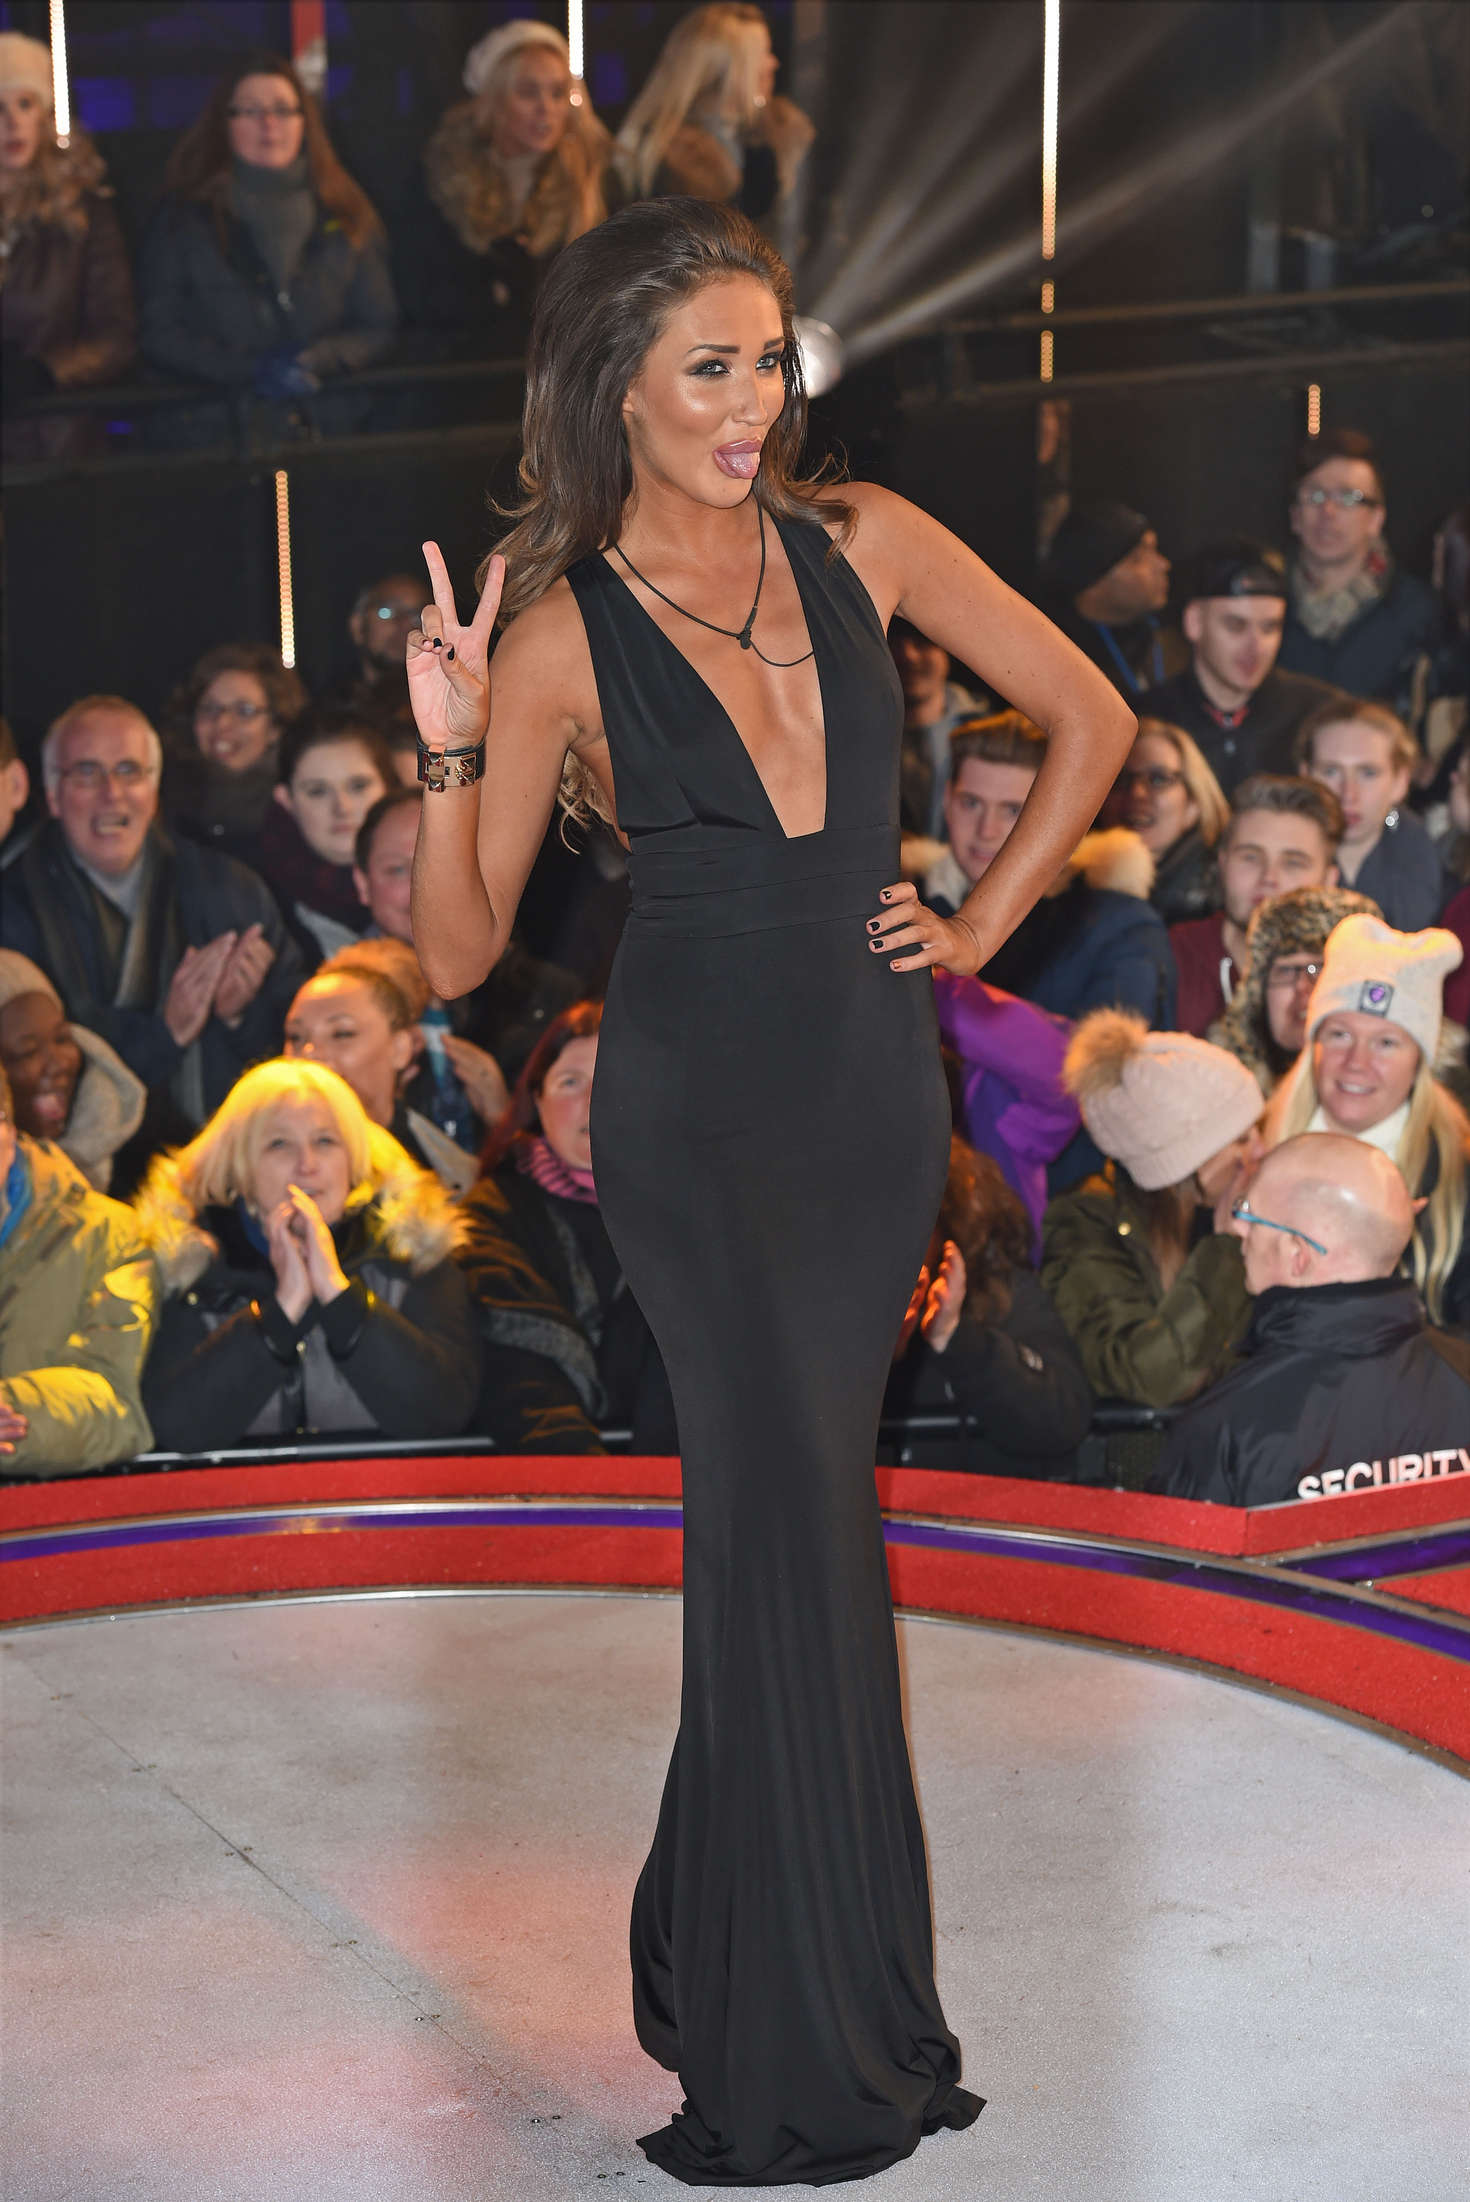 Megan McKenna Celebrity Big Brother Eviction Night at the Big Brother House in Hertfordshire